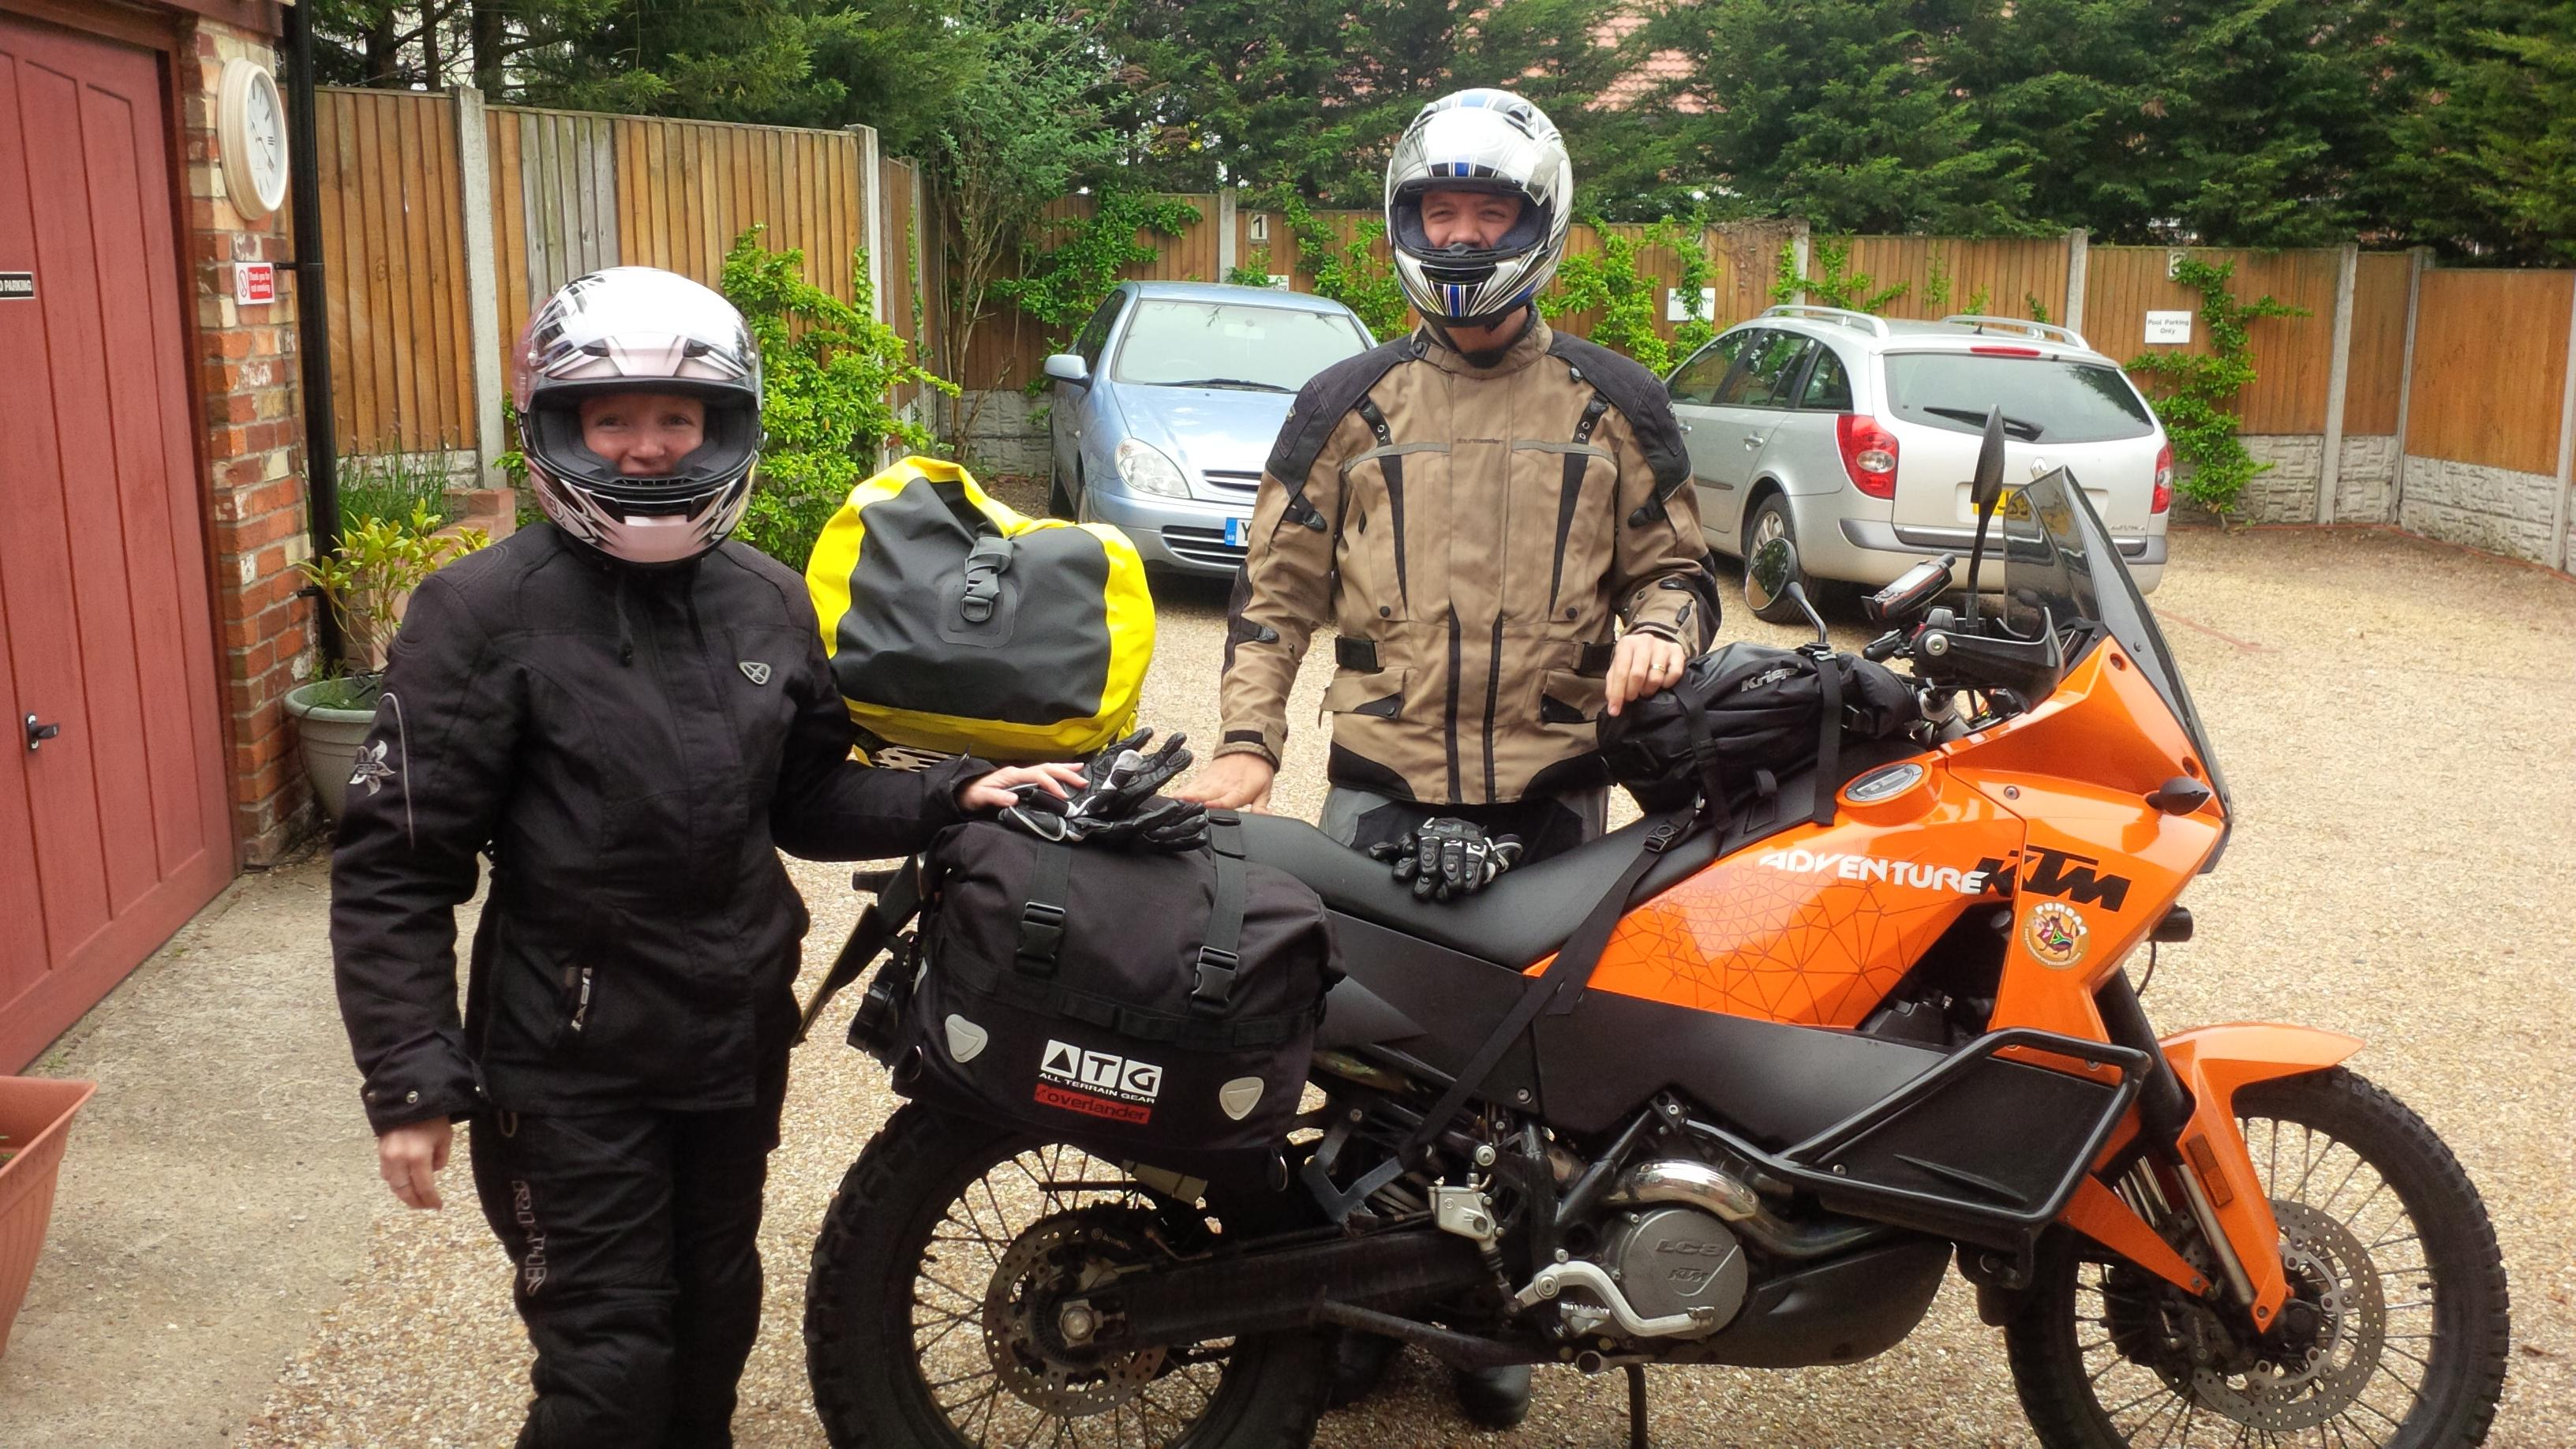 Farewell to the intrepid Bikers